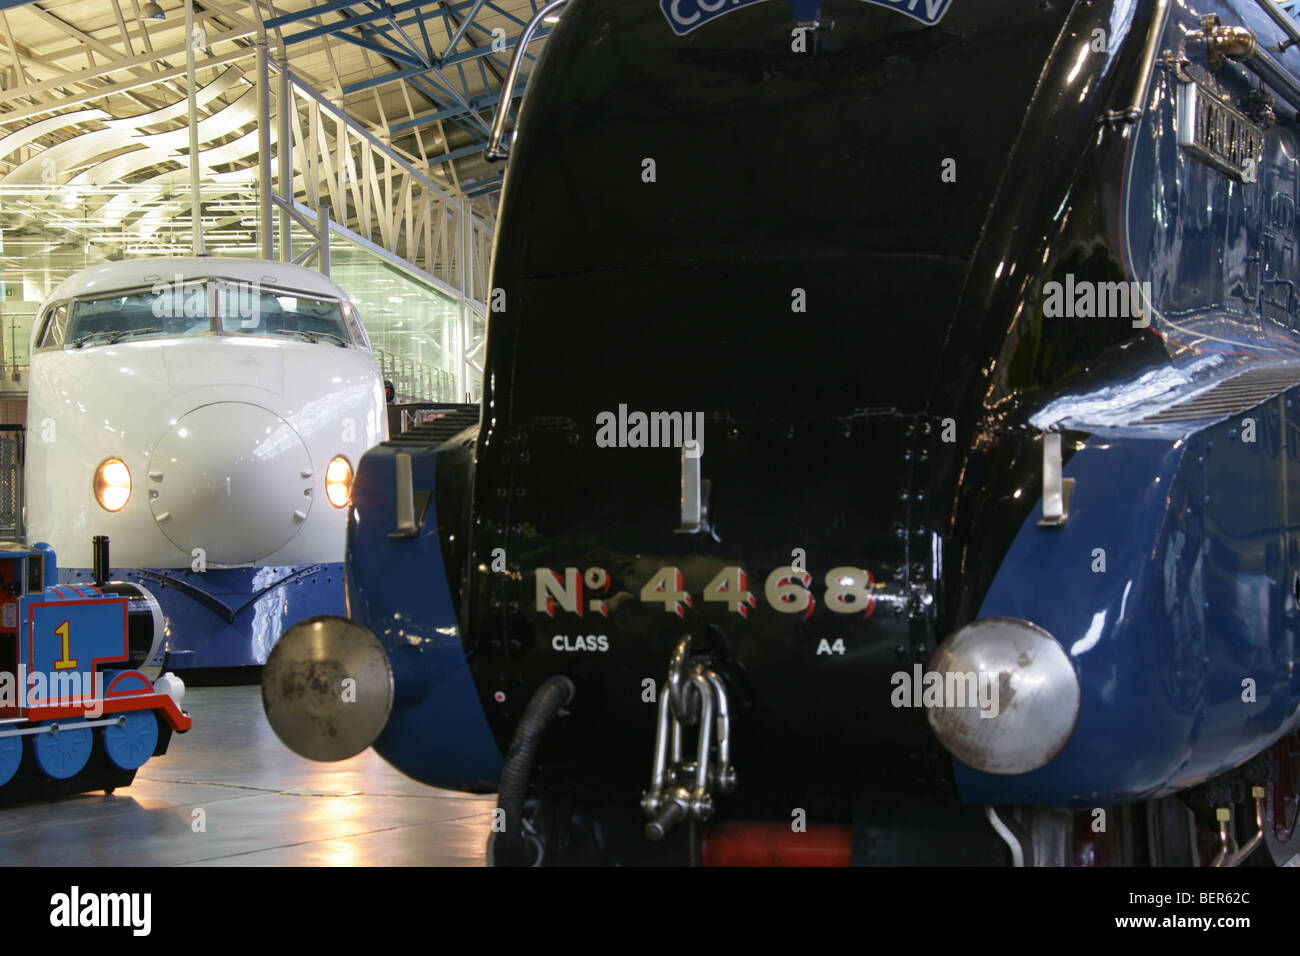 The Shinkansen Bullet Train and Thomas the Tank engine in the background, with the Mallard locomotive engine in - Stock Image